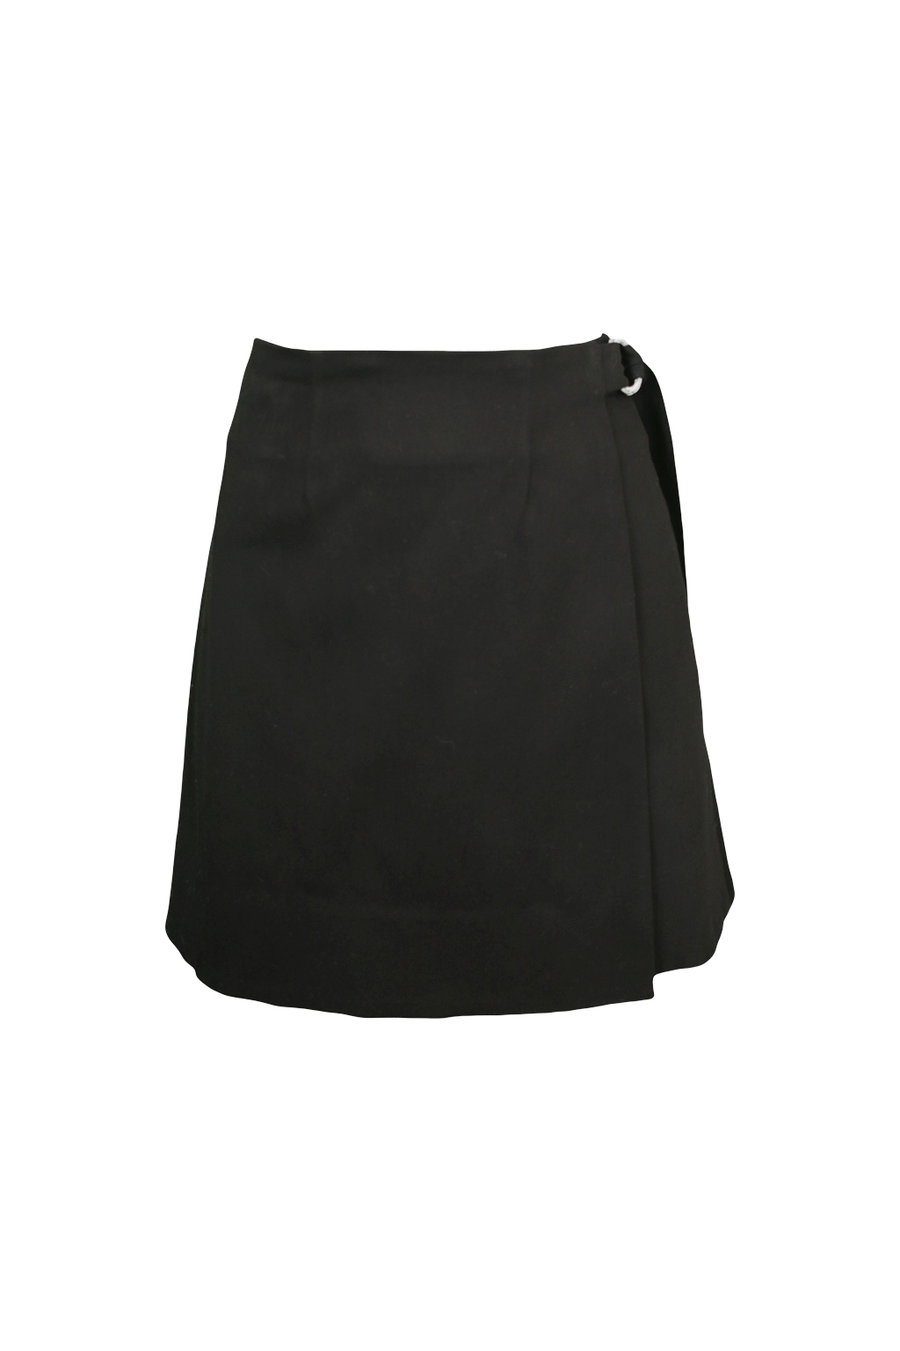 Pencil Wrap Skirt in Black